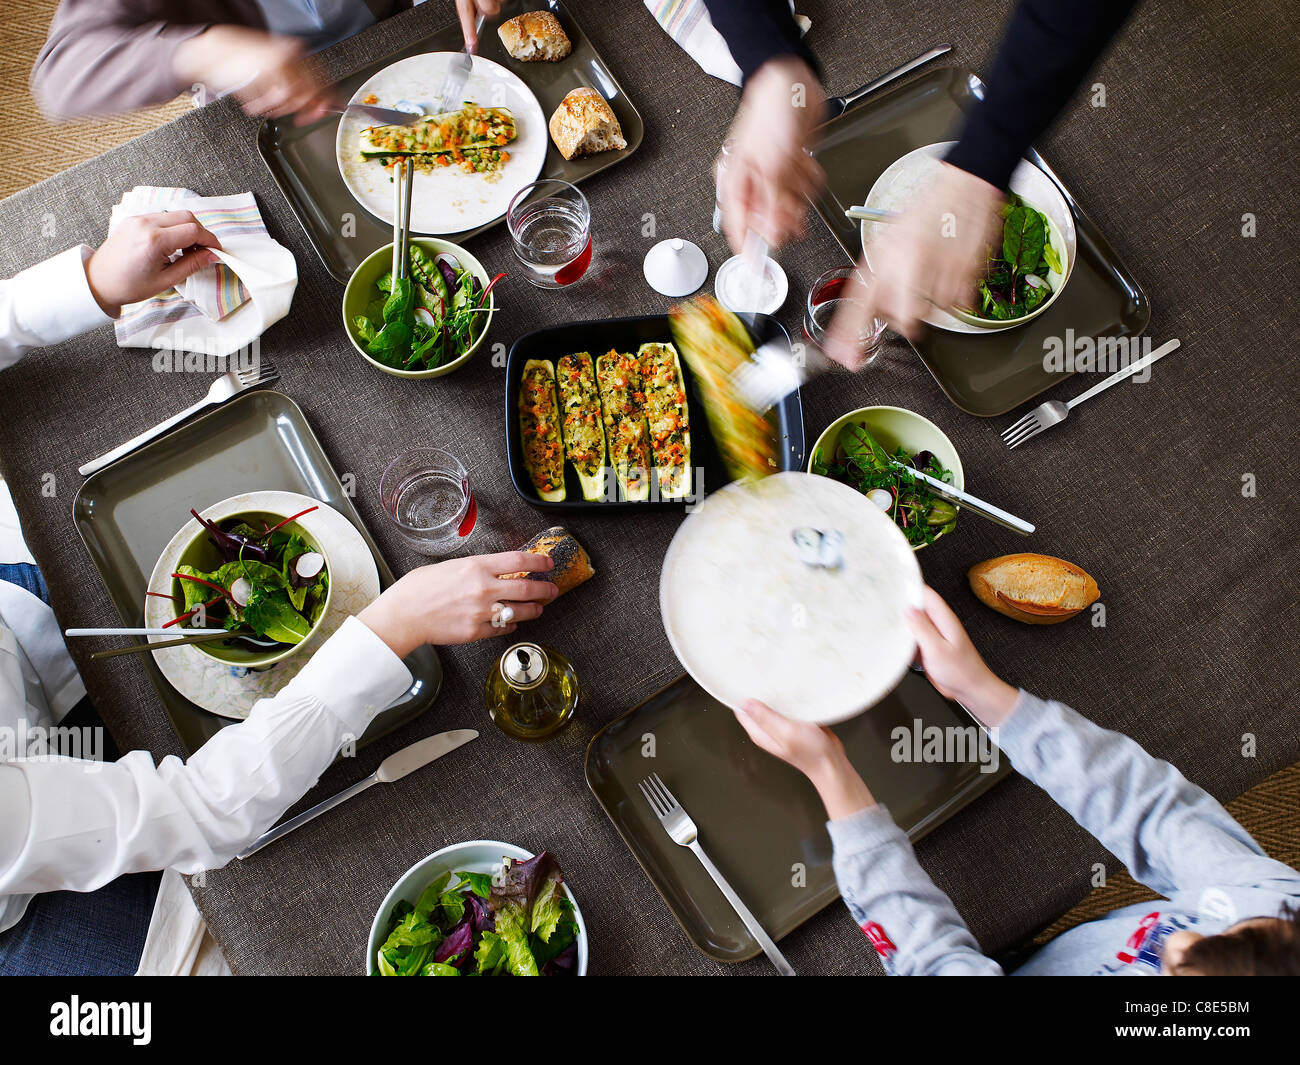 Dining with friends - Stock Image